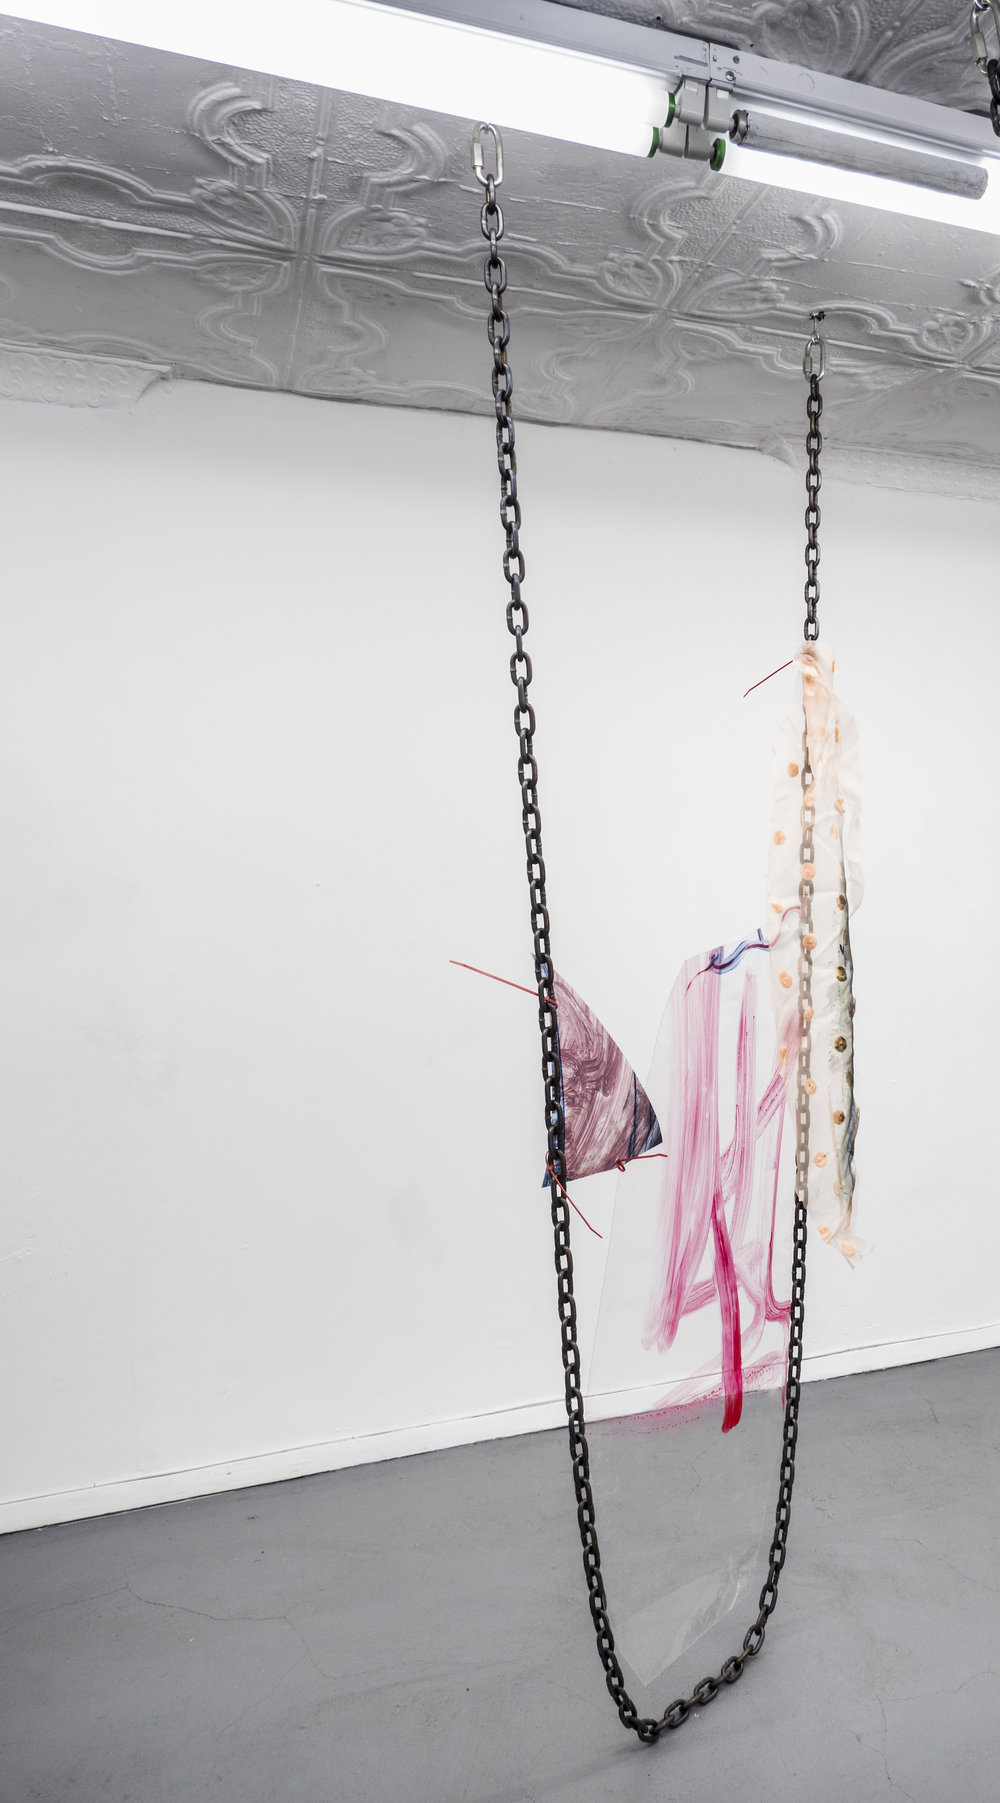 Raque Ford,  4yrs,  Acrylic paint on polypropelene, steel chain, zip ties and fabric, 86 x 32 in